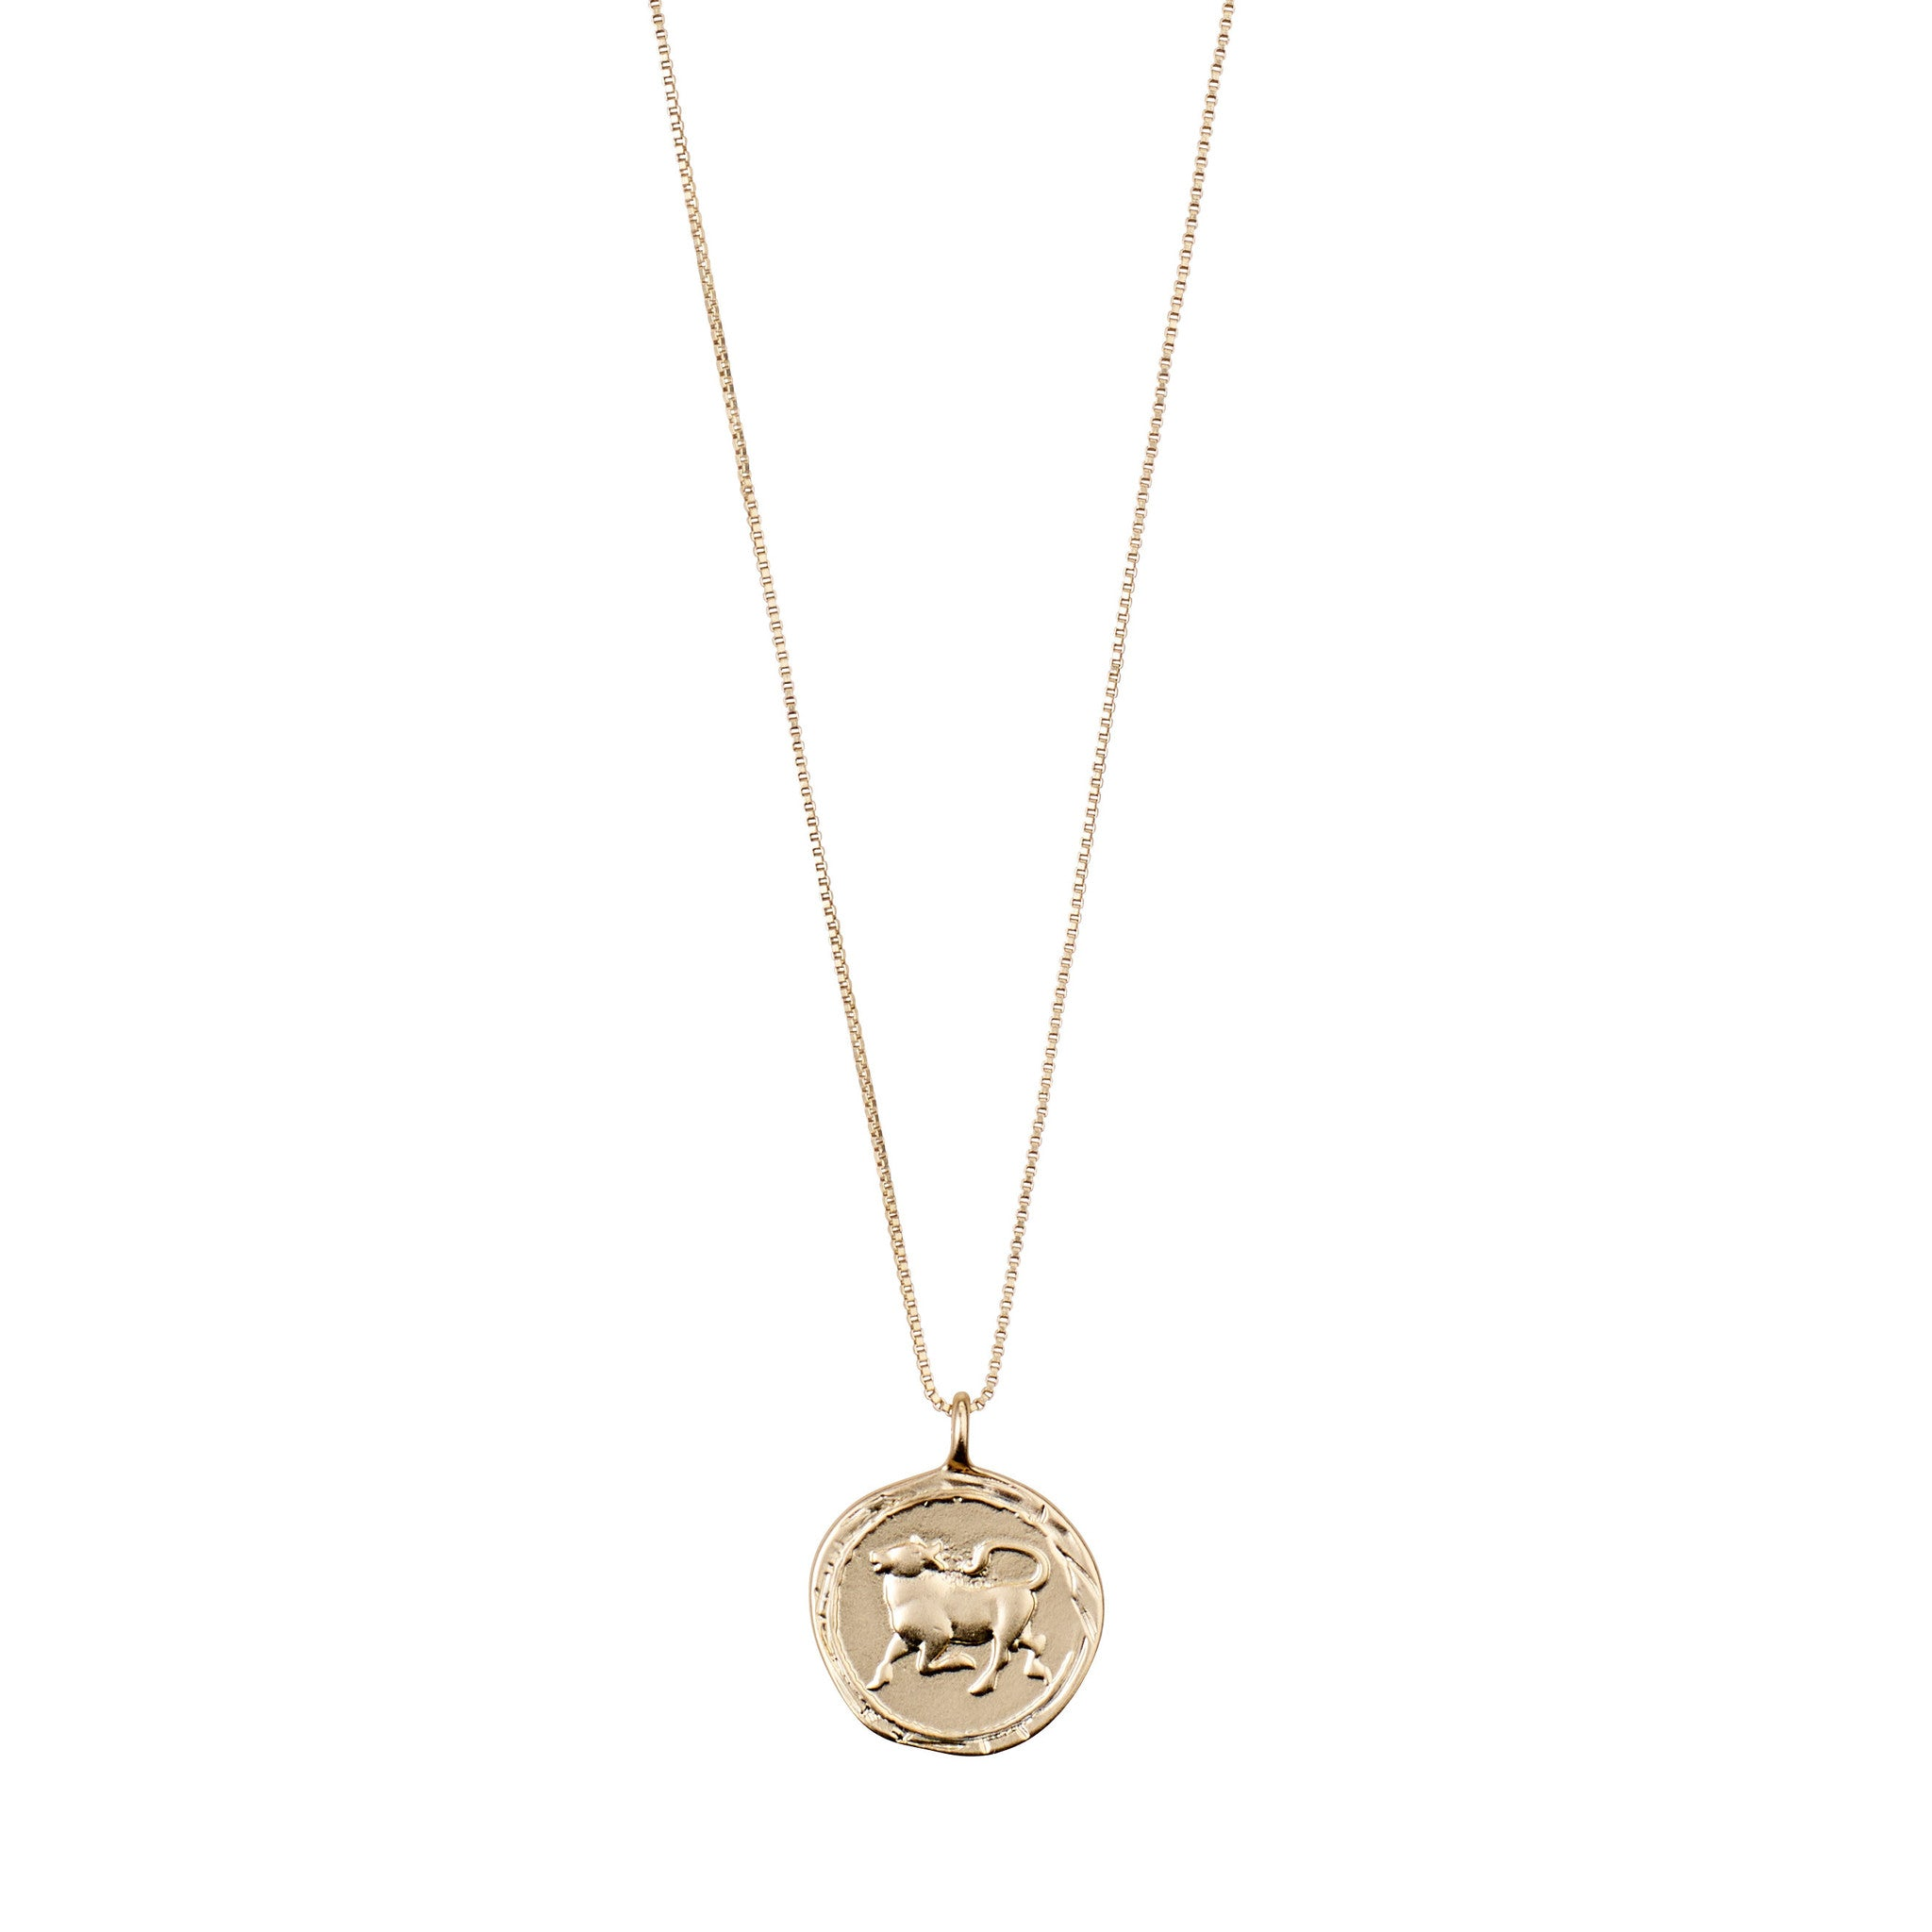 TAURUS- Pilgrim Necklace | | April 20 - May 20